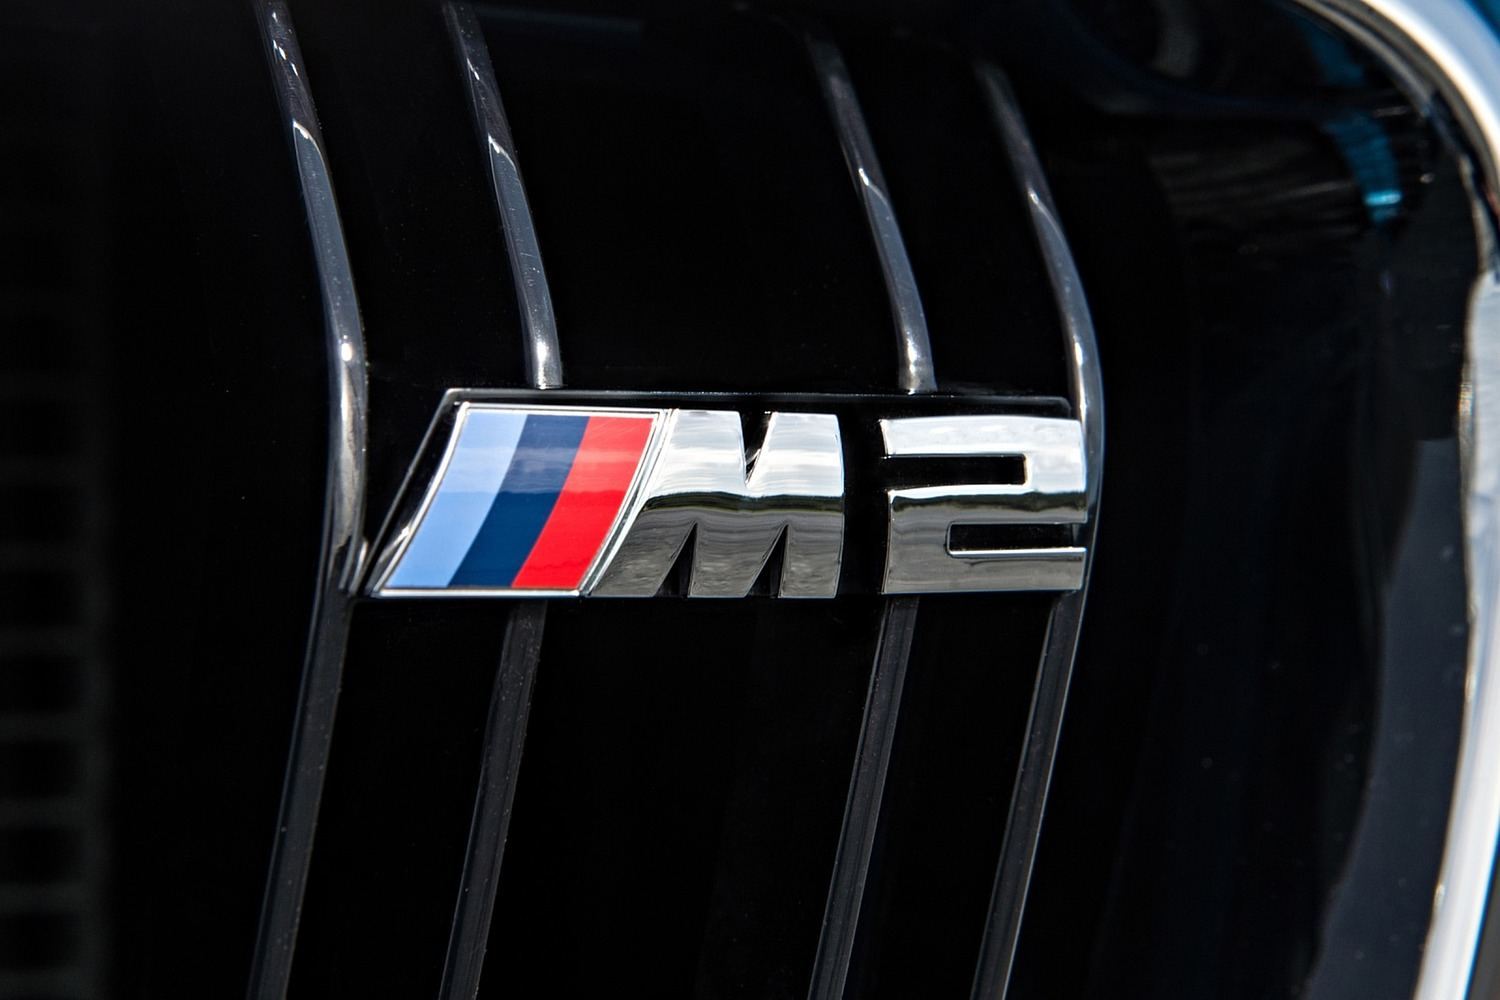 BMW M2 Coupe Front Badge (2016 model year shown)